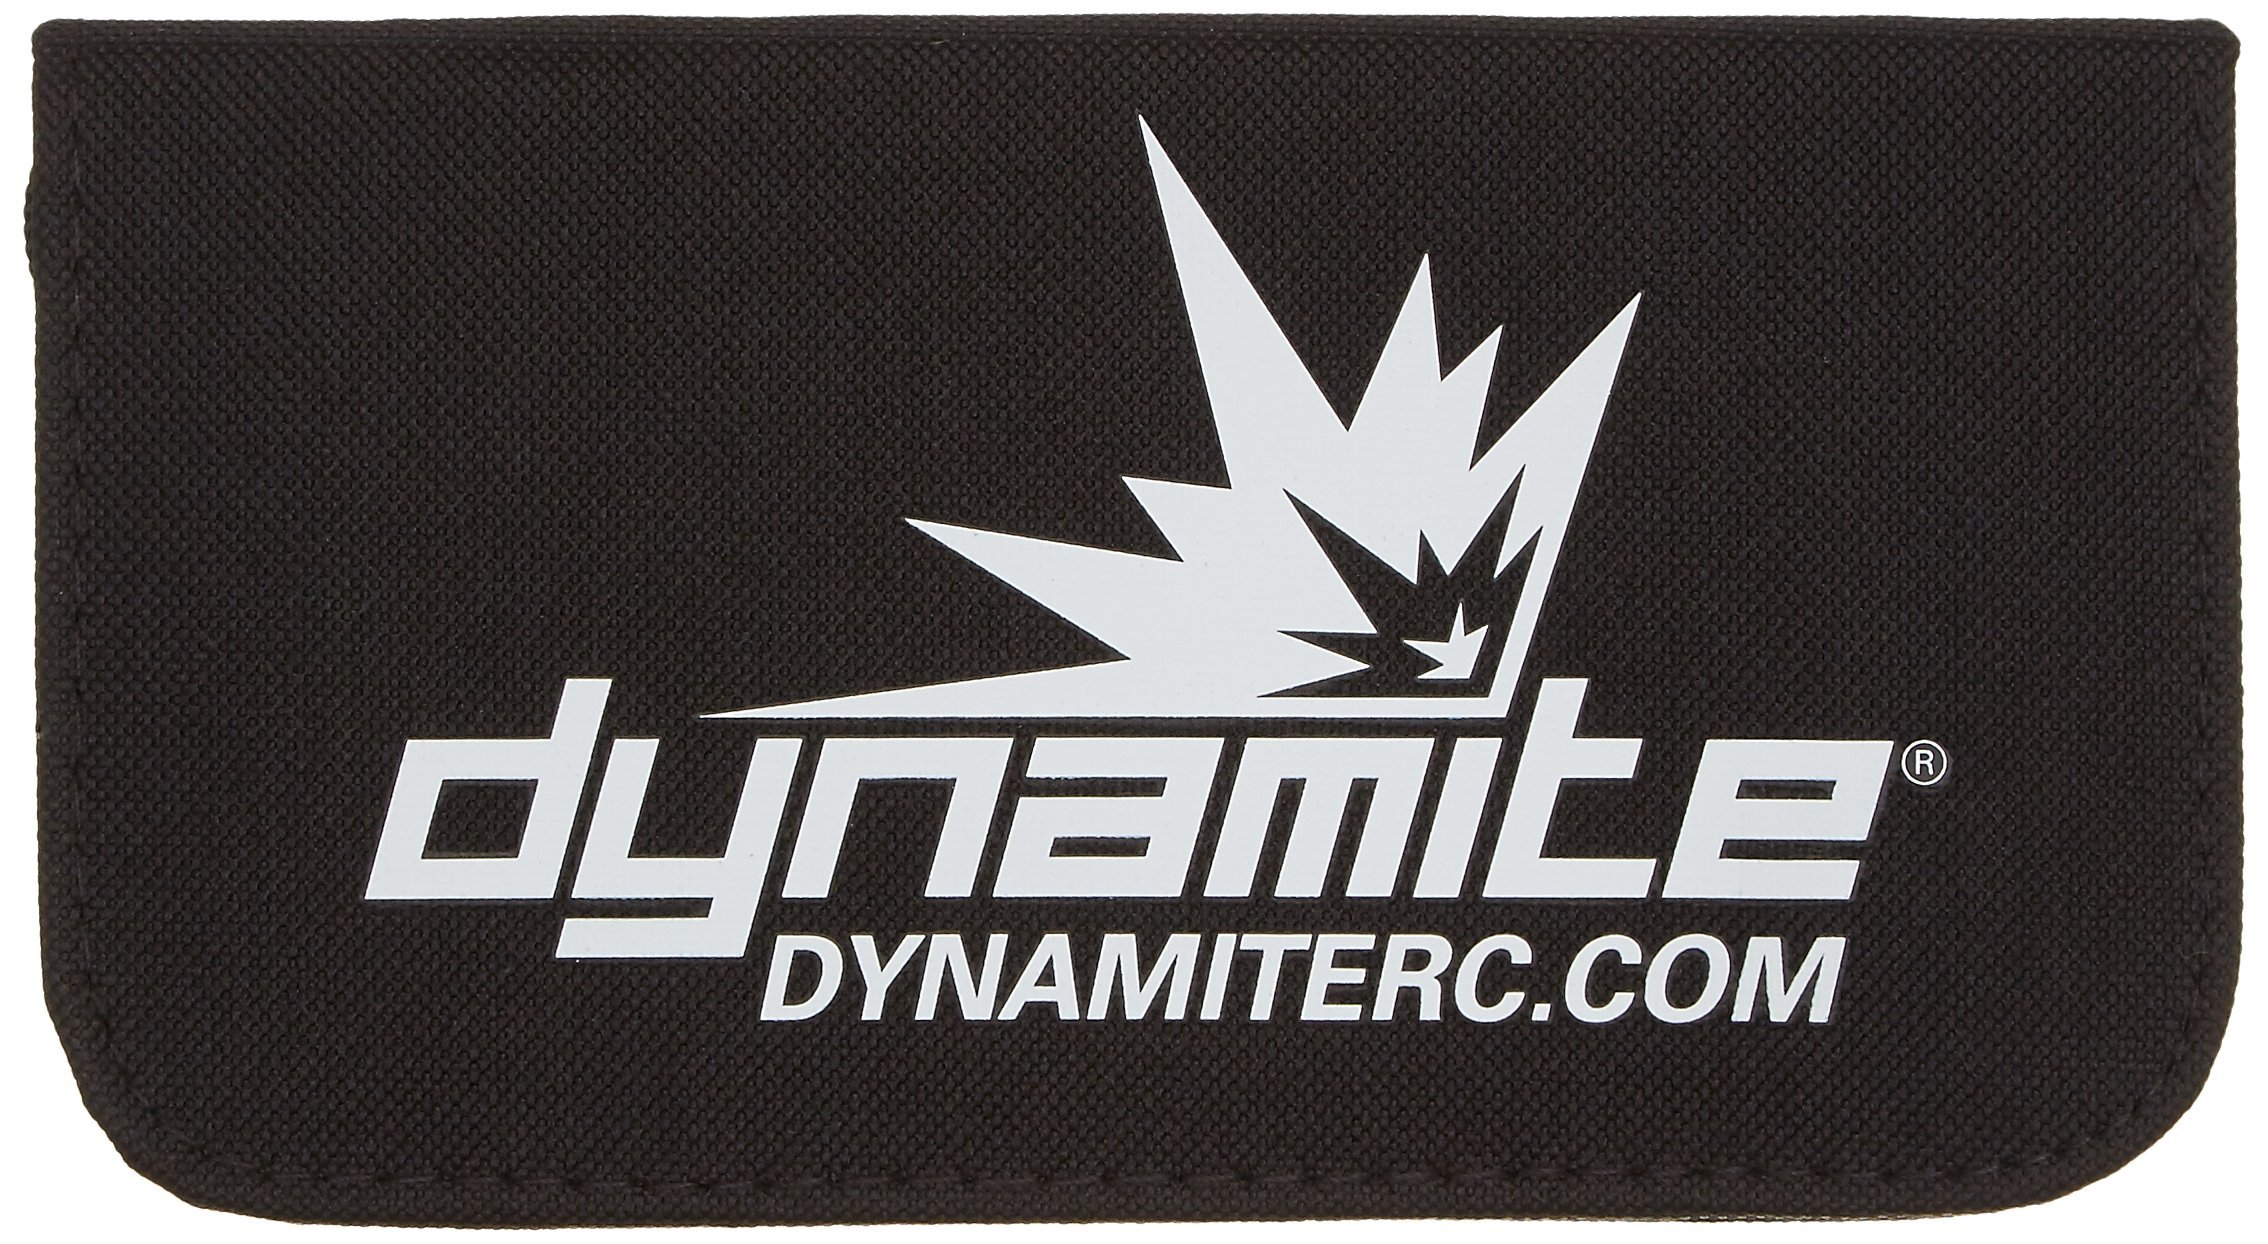 Dynamite Startup Tool Set for Traxxas Vehicles by Dynamite (Image #3)